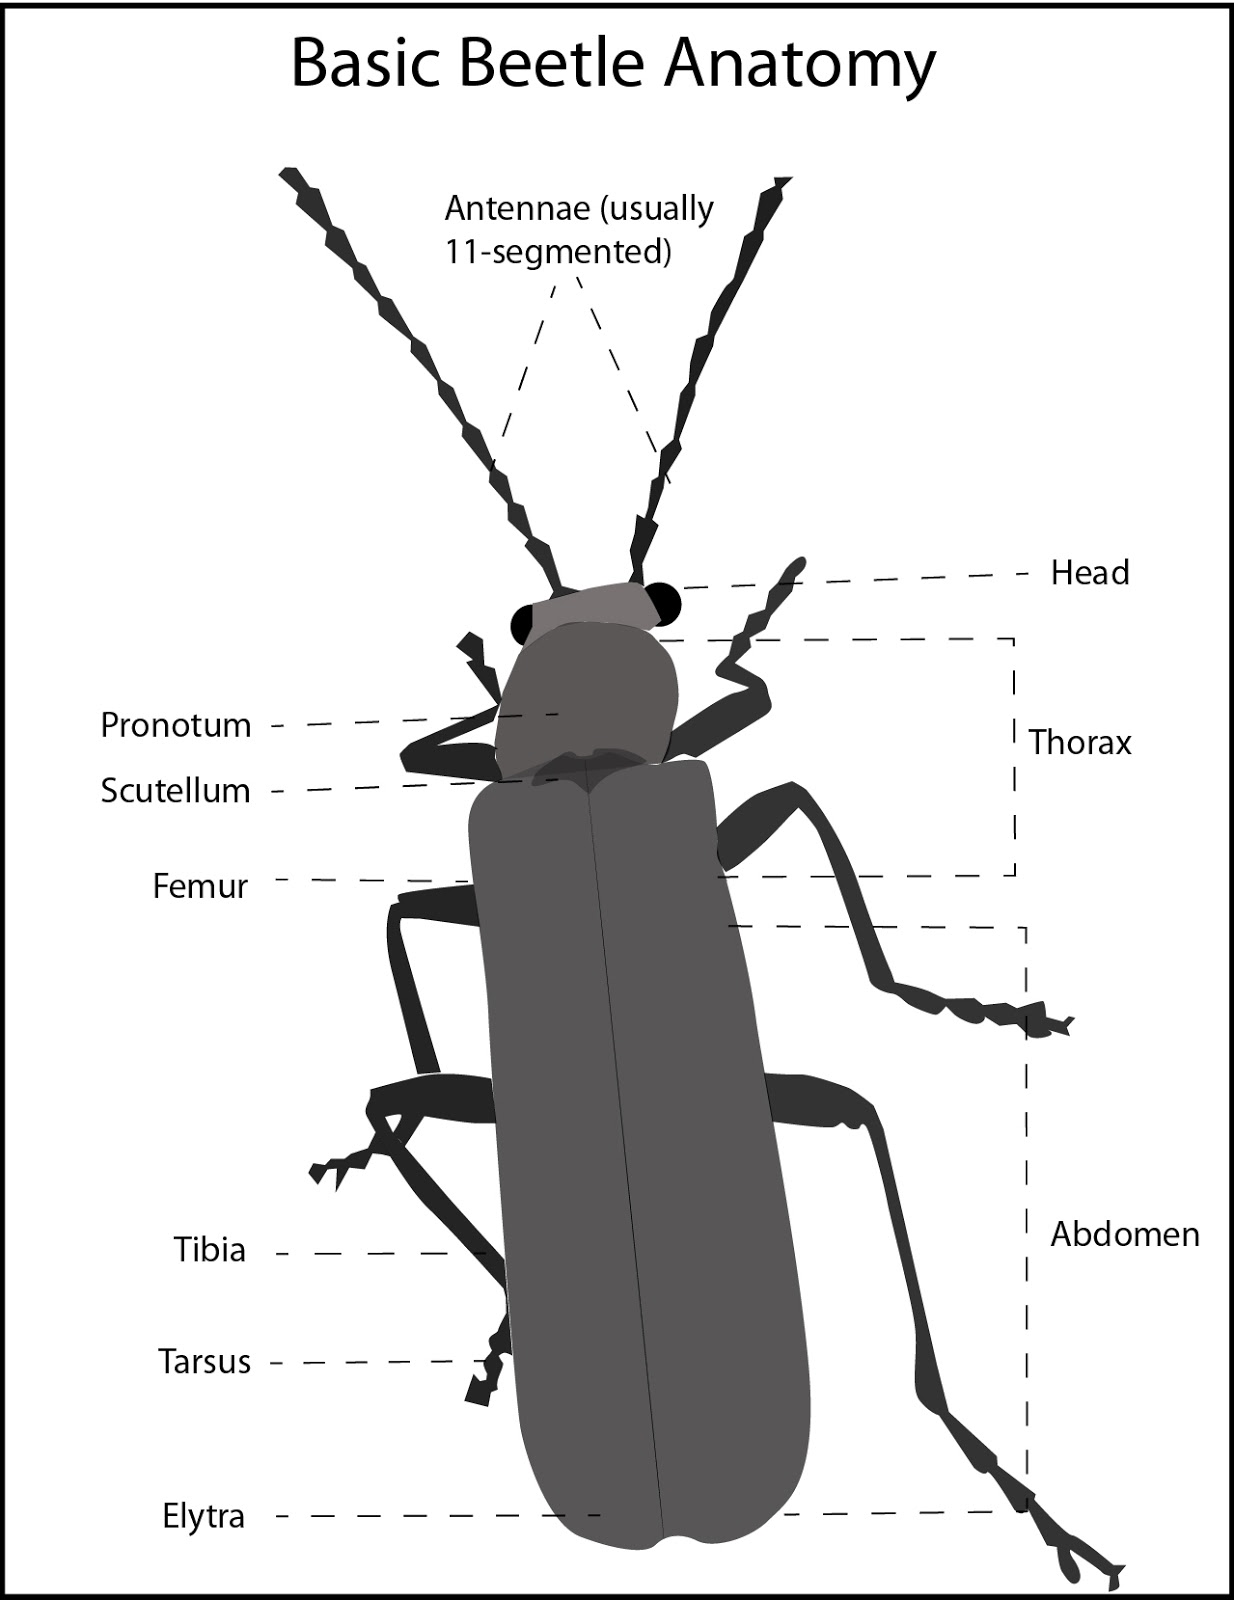 Beetle Insect Anatomy Diagram Pictures to Pin on Pinterest  PinsDaddy